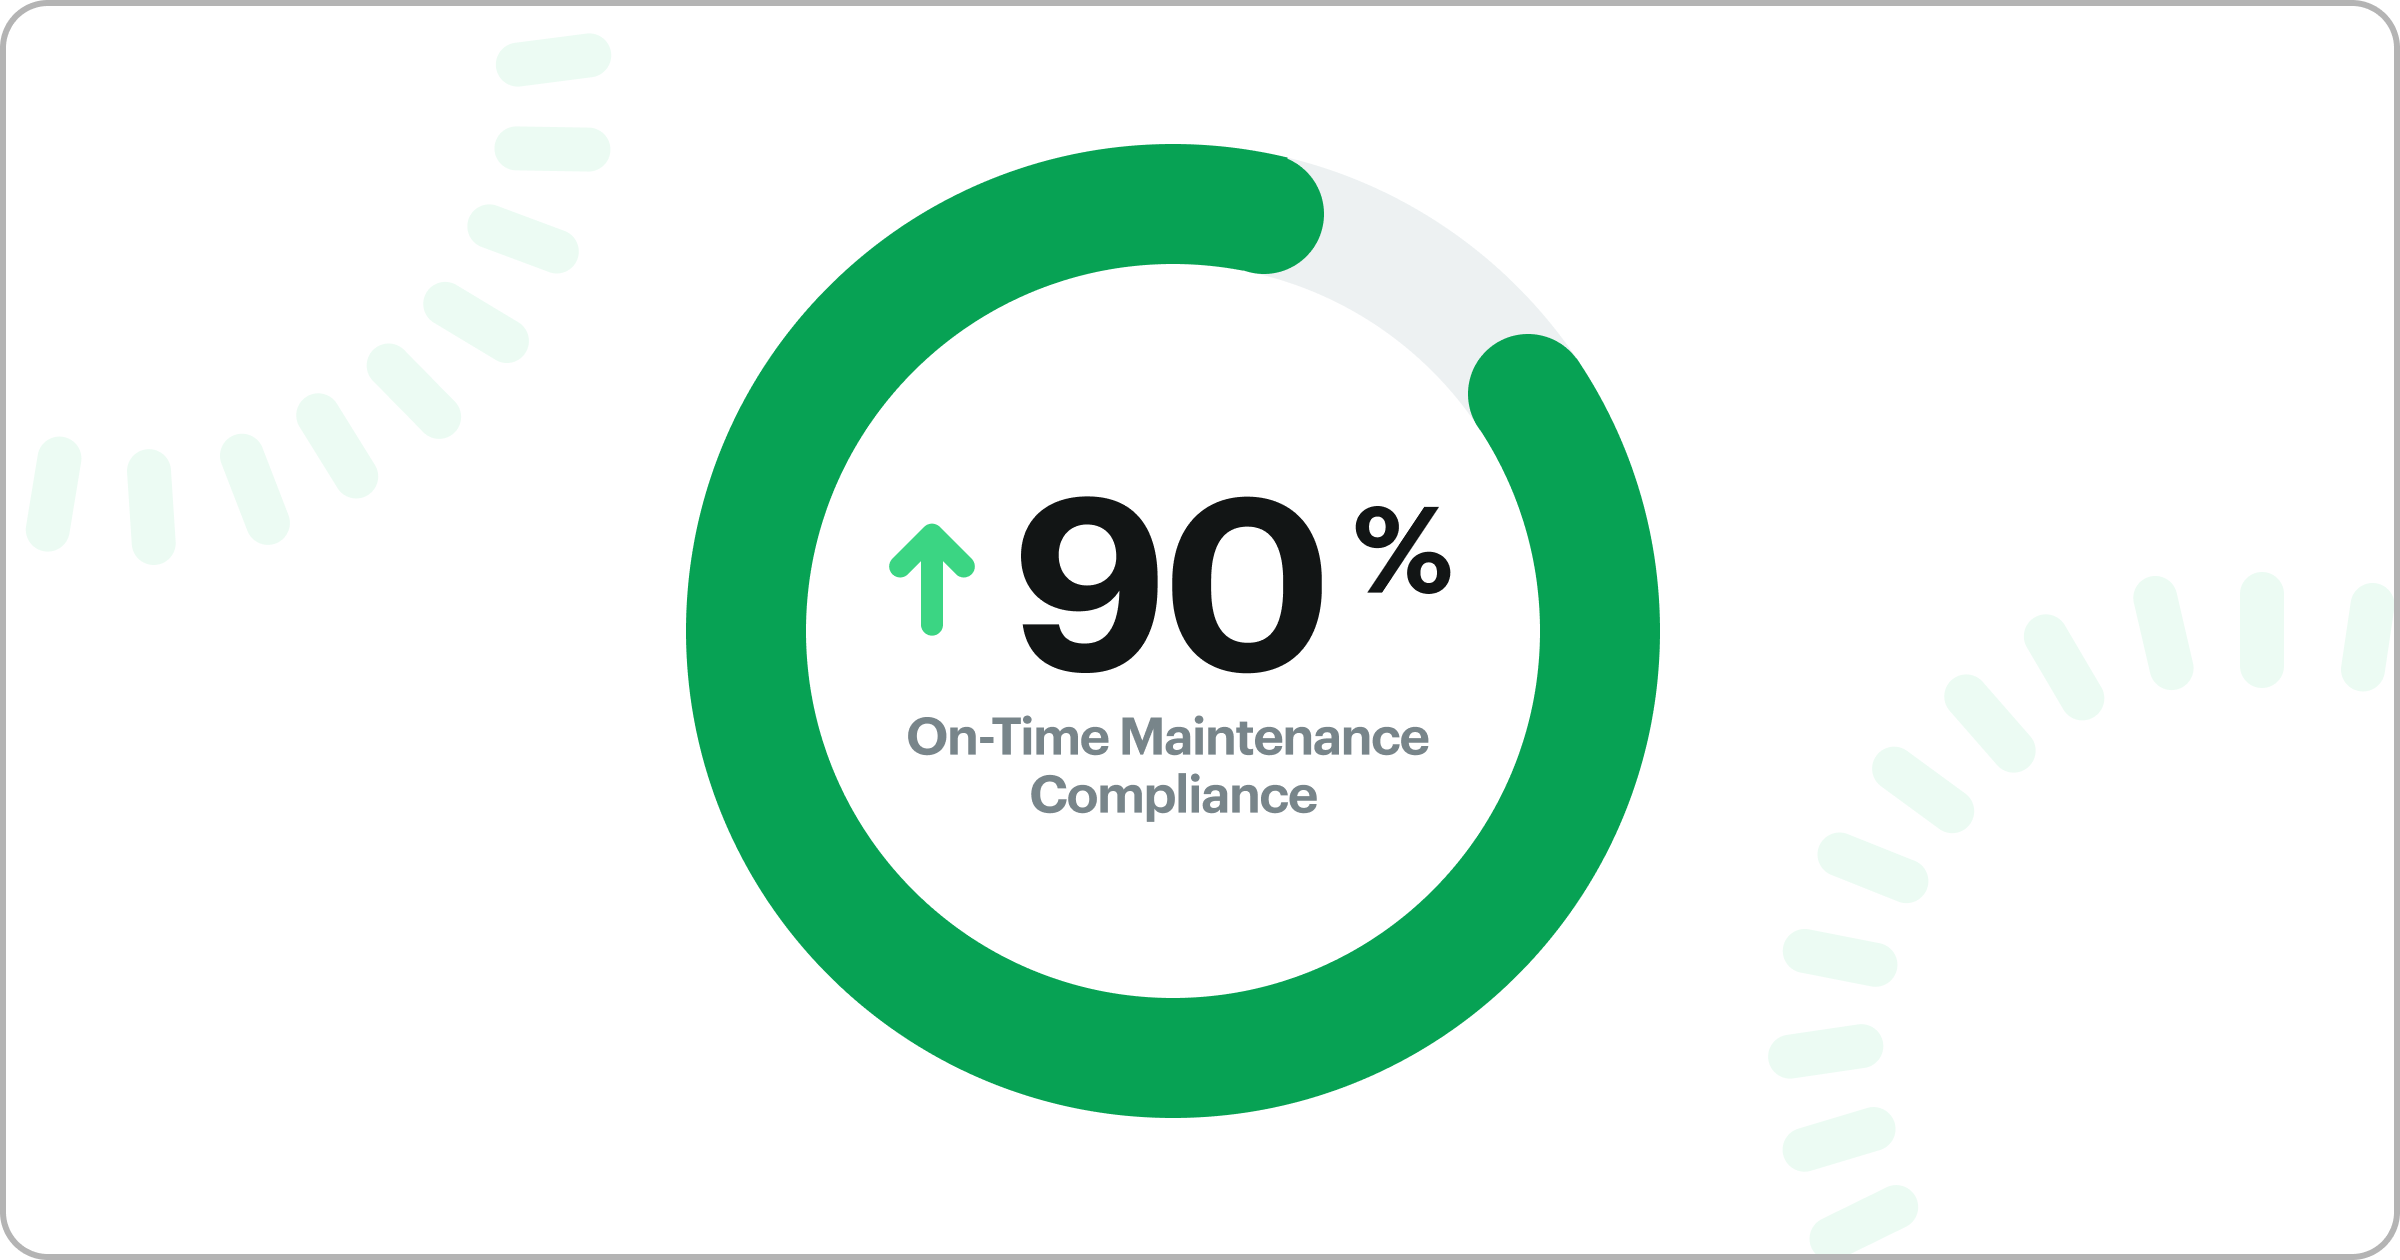 Increased On-Time Maintenance Compliance to 90%